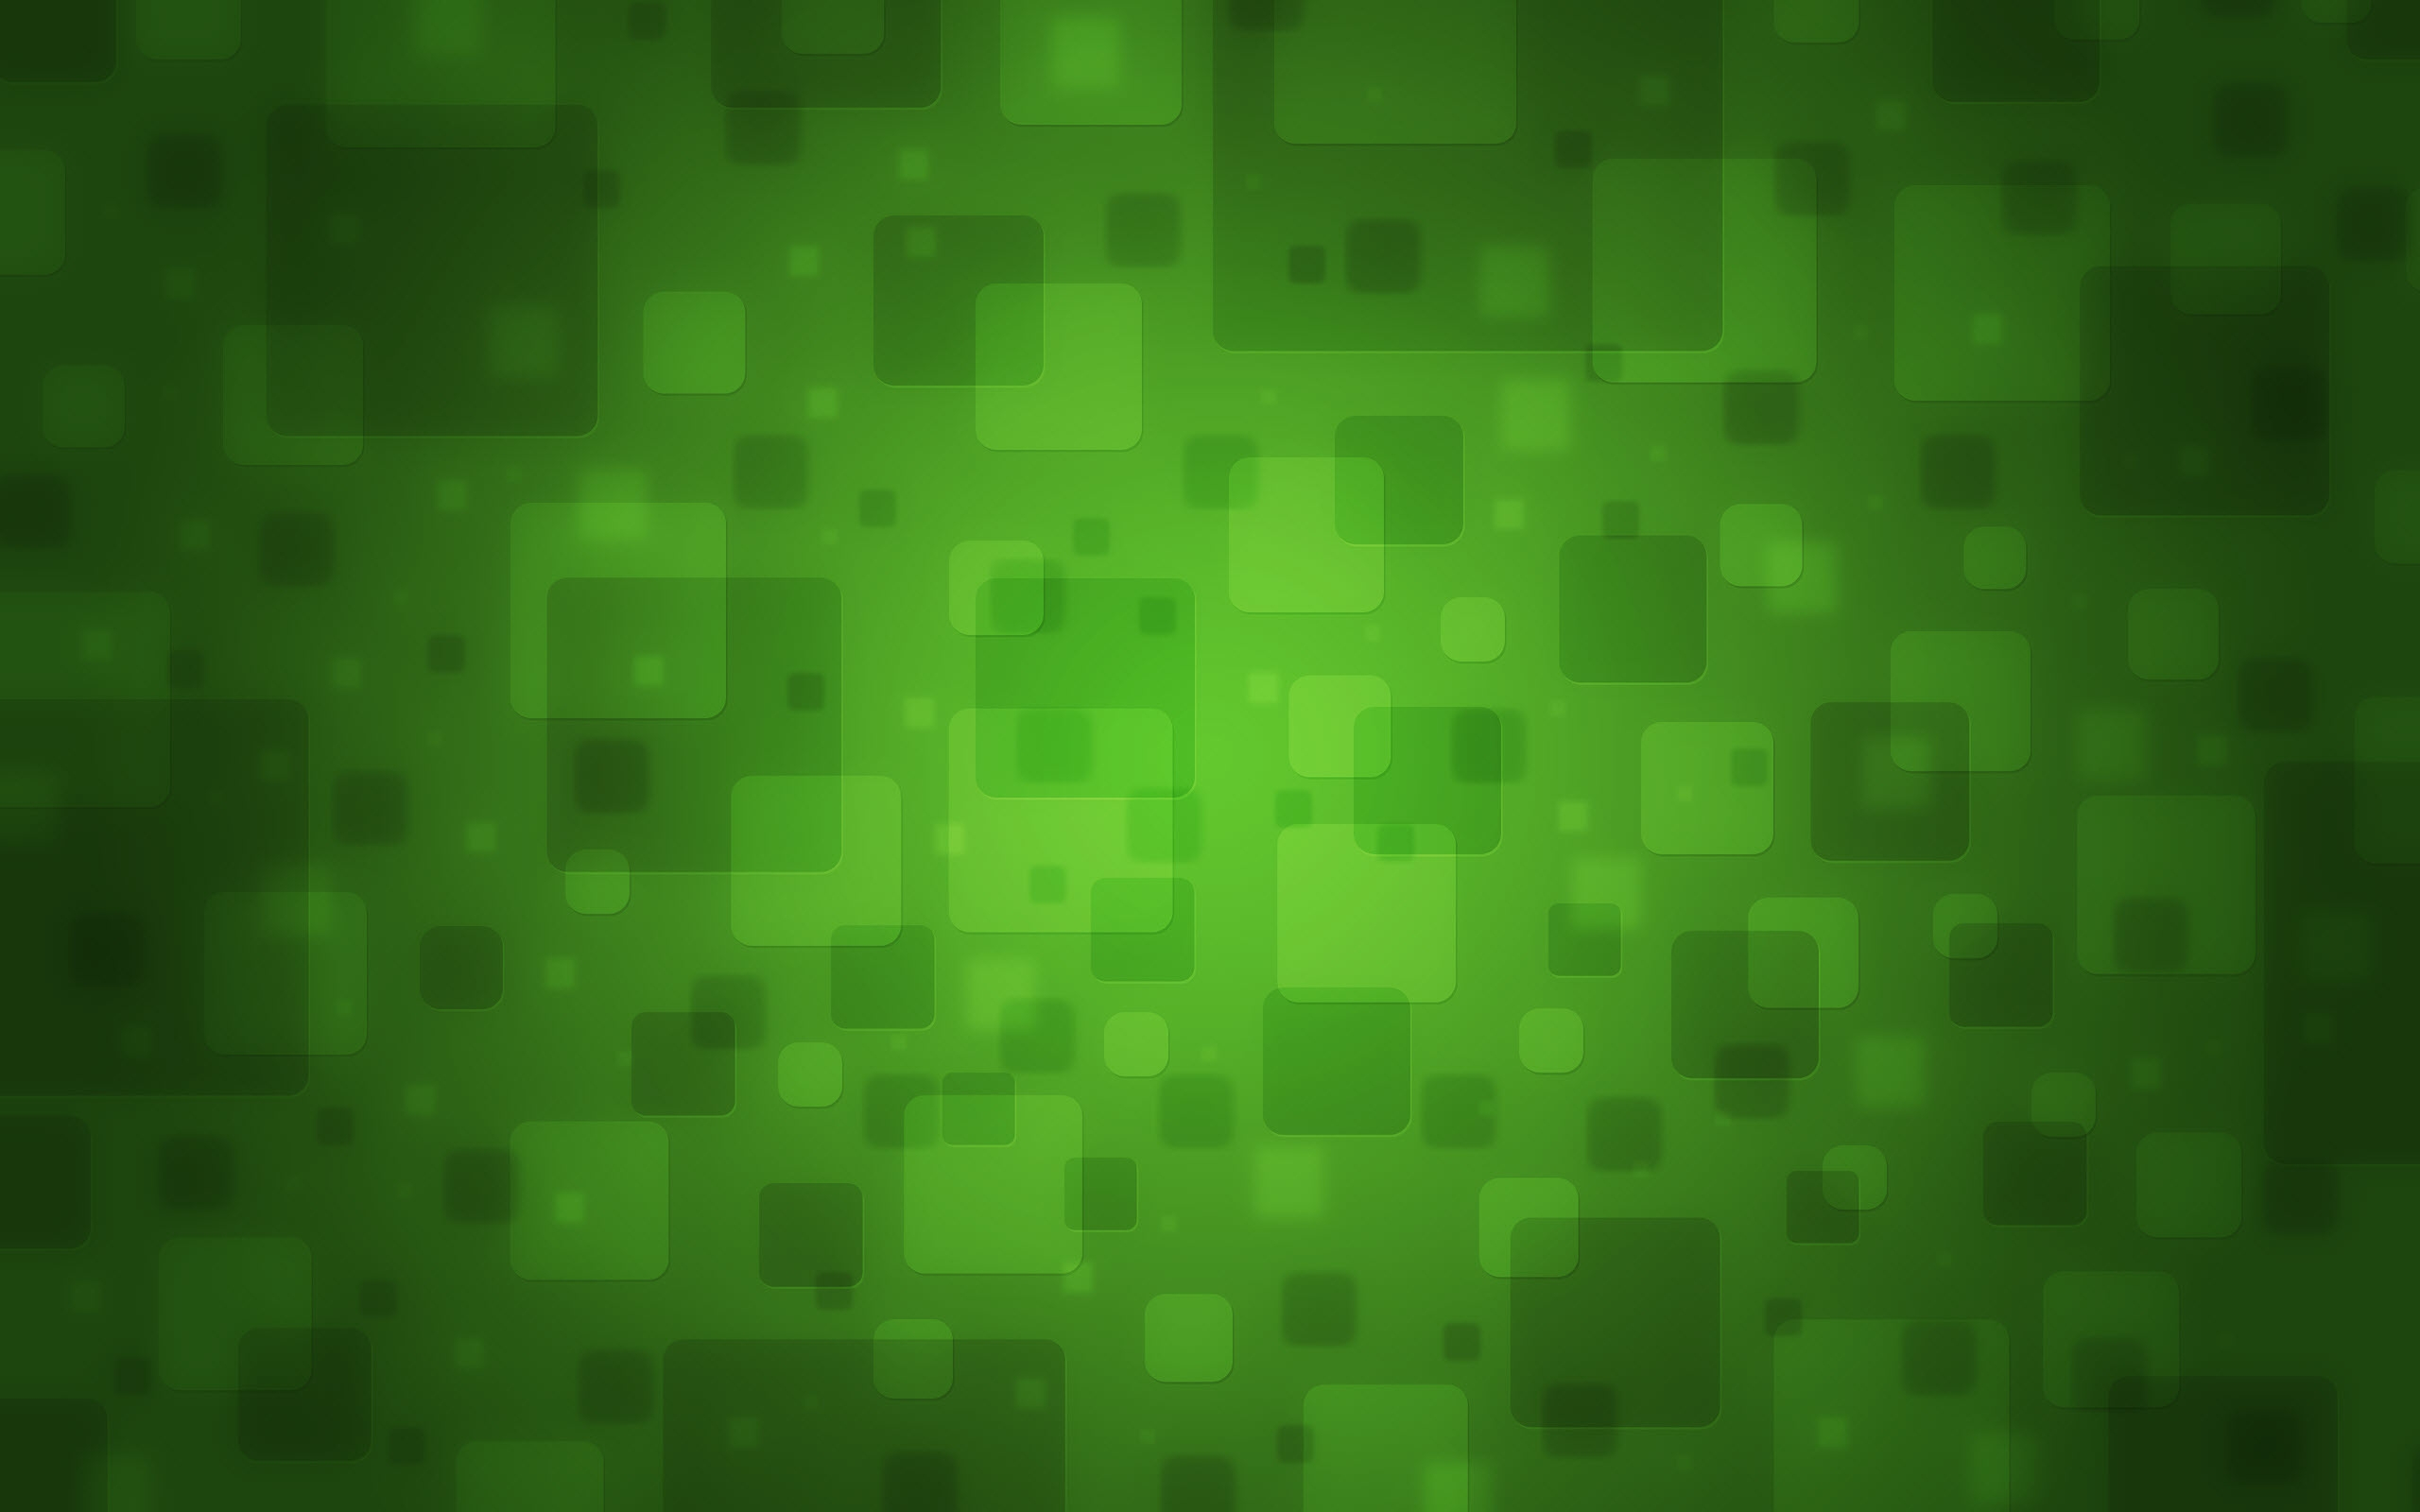 Hd wallpaper green - Abstract Green Hd Wallpaper